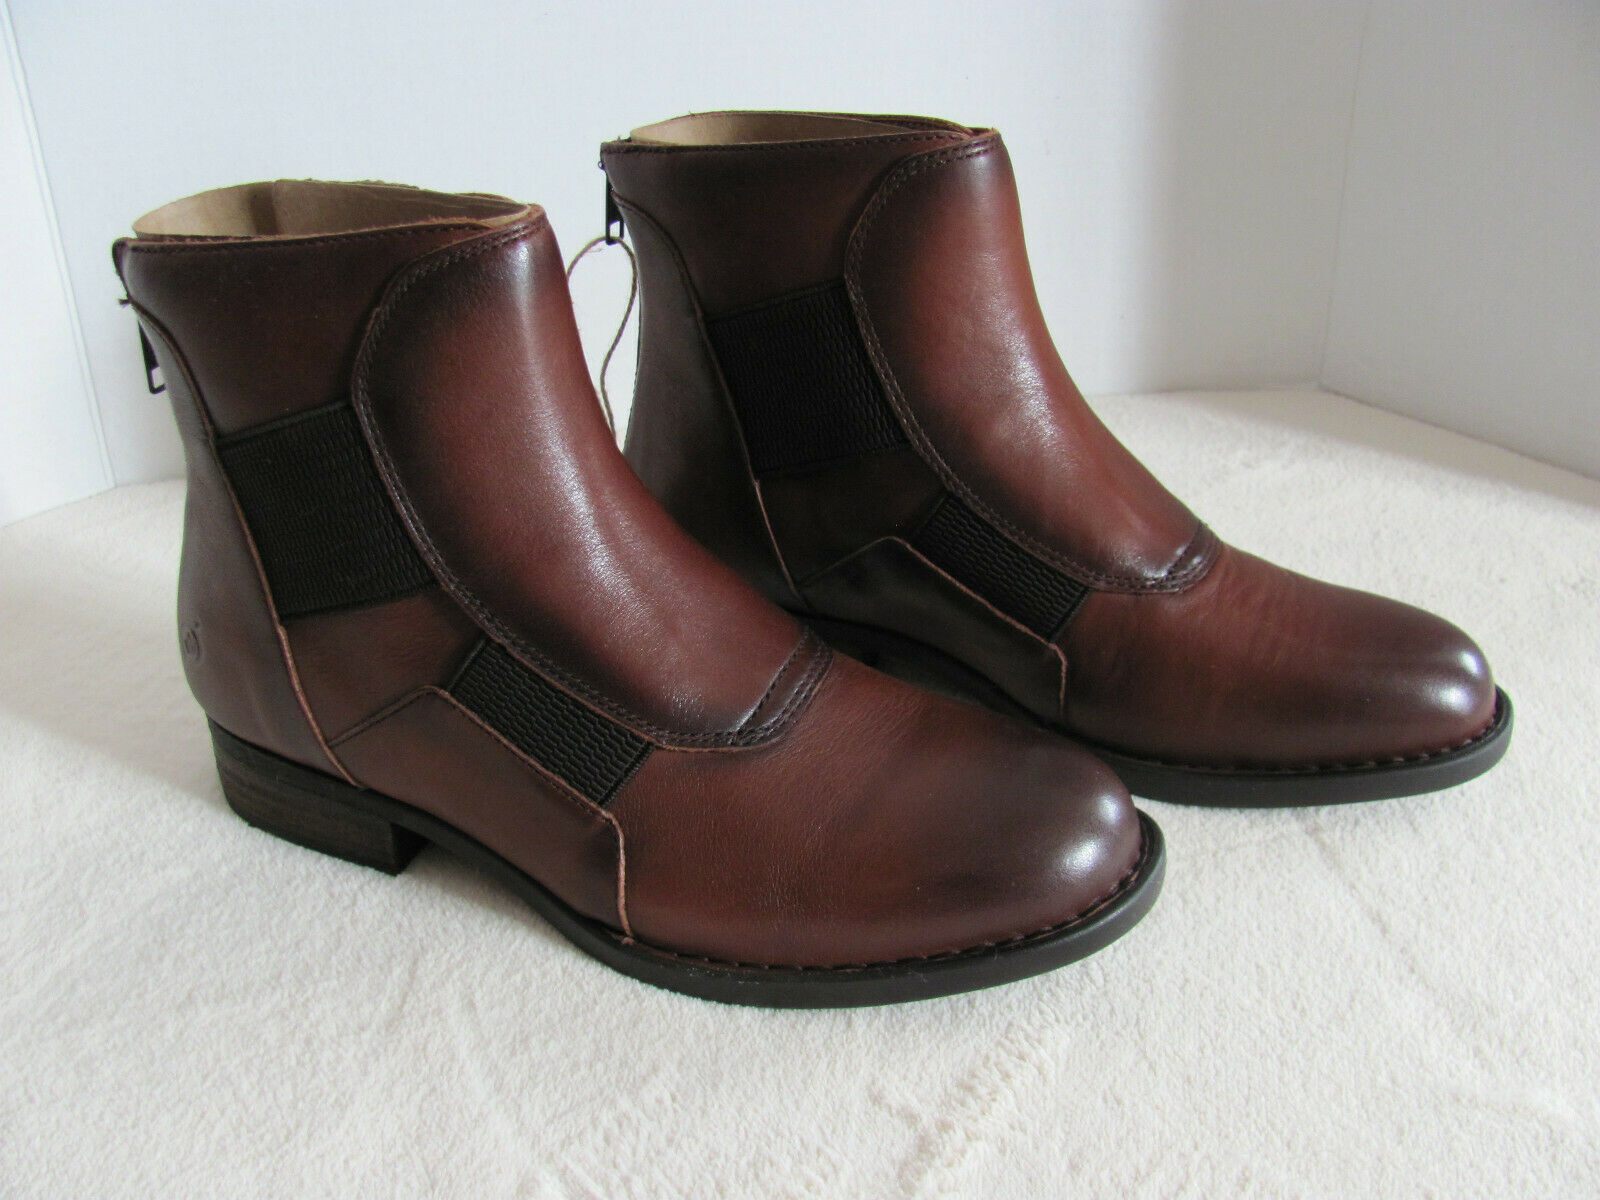 Born Reid Leather Ankle Boots-Brown Cognac-Back Zipper-Stacked Heel-Size 7.5 M